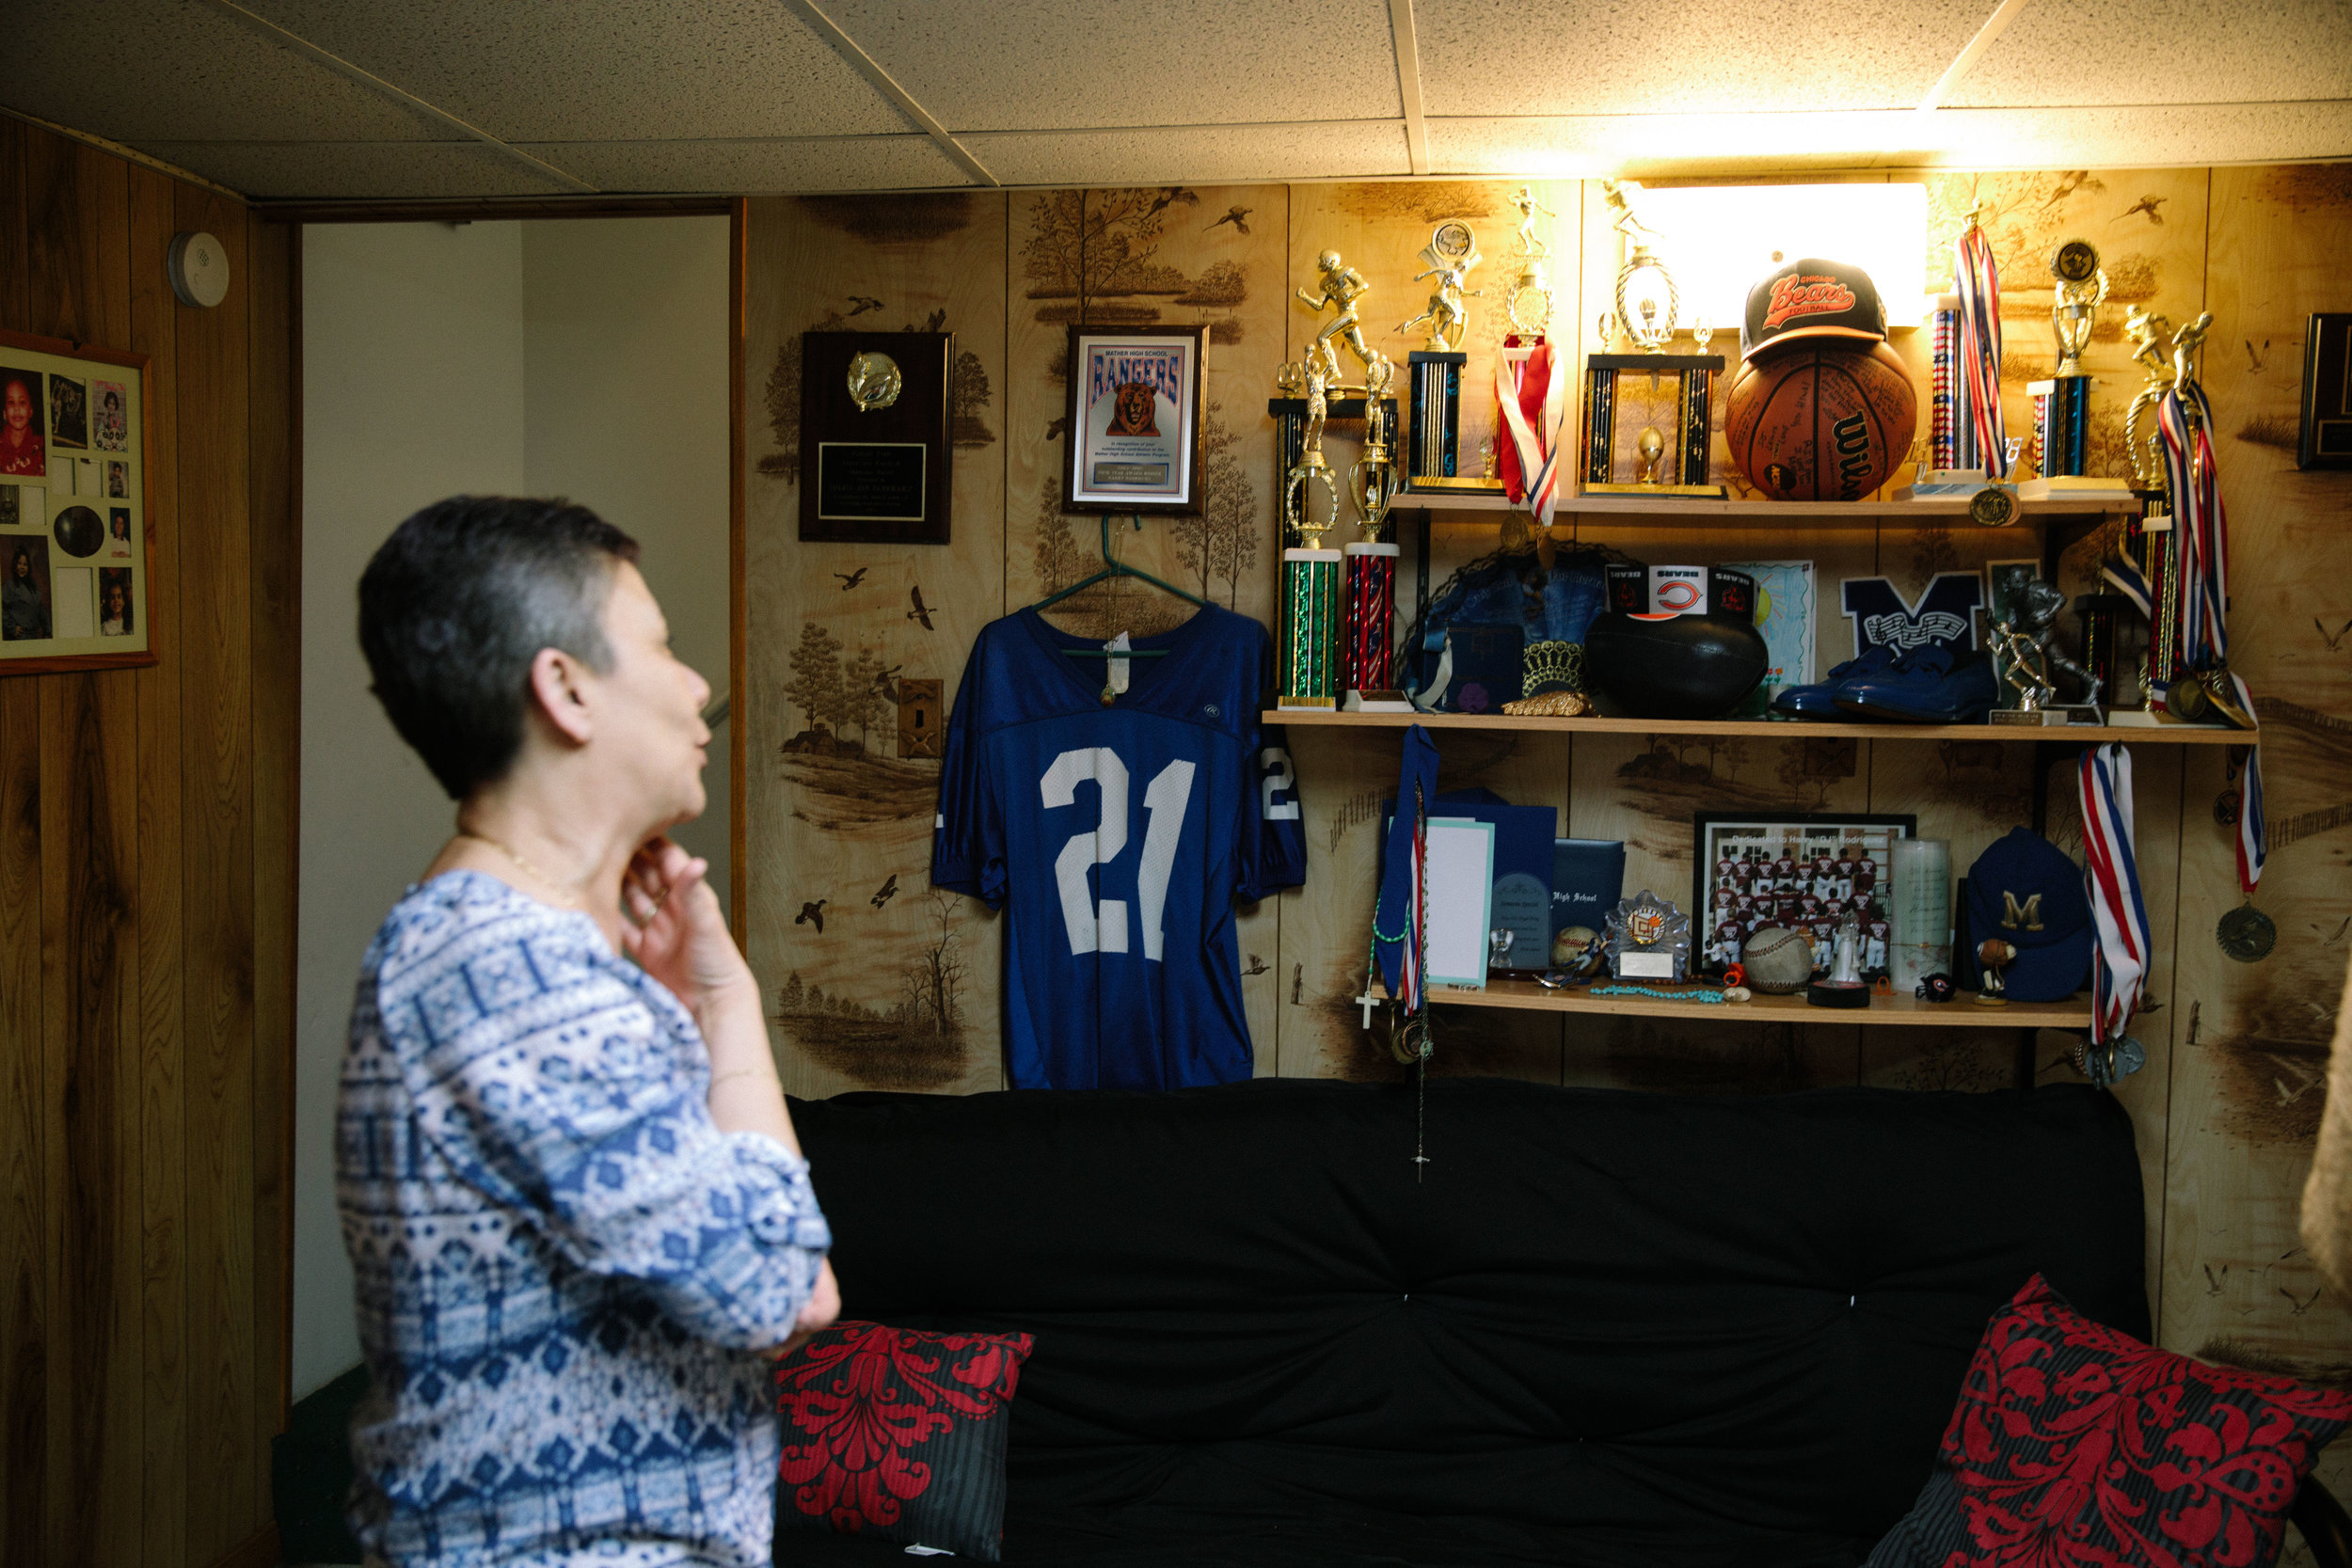 Elizabeth Ramirez, stands in the basement of her home gazing at a wall of rememberence devoted to her late son Dee Jay. The shelves contain momentos of Dee Jay's life and death, with items like his high school diploma, sports trophies, and the program from his memorial service. Dee Jay was shot and killed in the Belmont-Cragin neighborhood of Chicago in 2011. Dee Jay's mother, Elizabeth, helped found an organization called Parents for Peace and Justice to help provide support and advocacy for families who have also lost children to gun violence in Chicago. MCC has partnered with Parents for Peace and Justice to help support them in their important work.